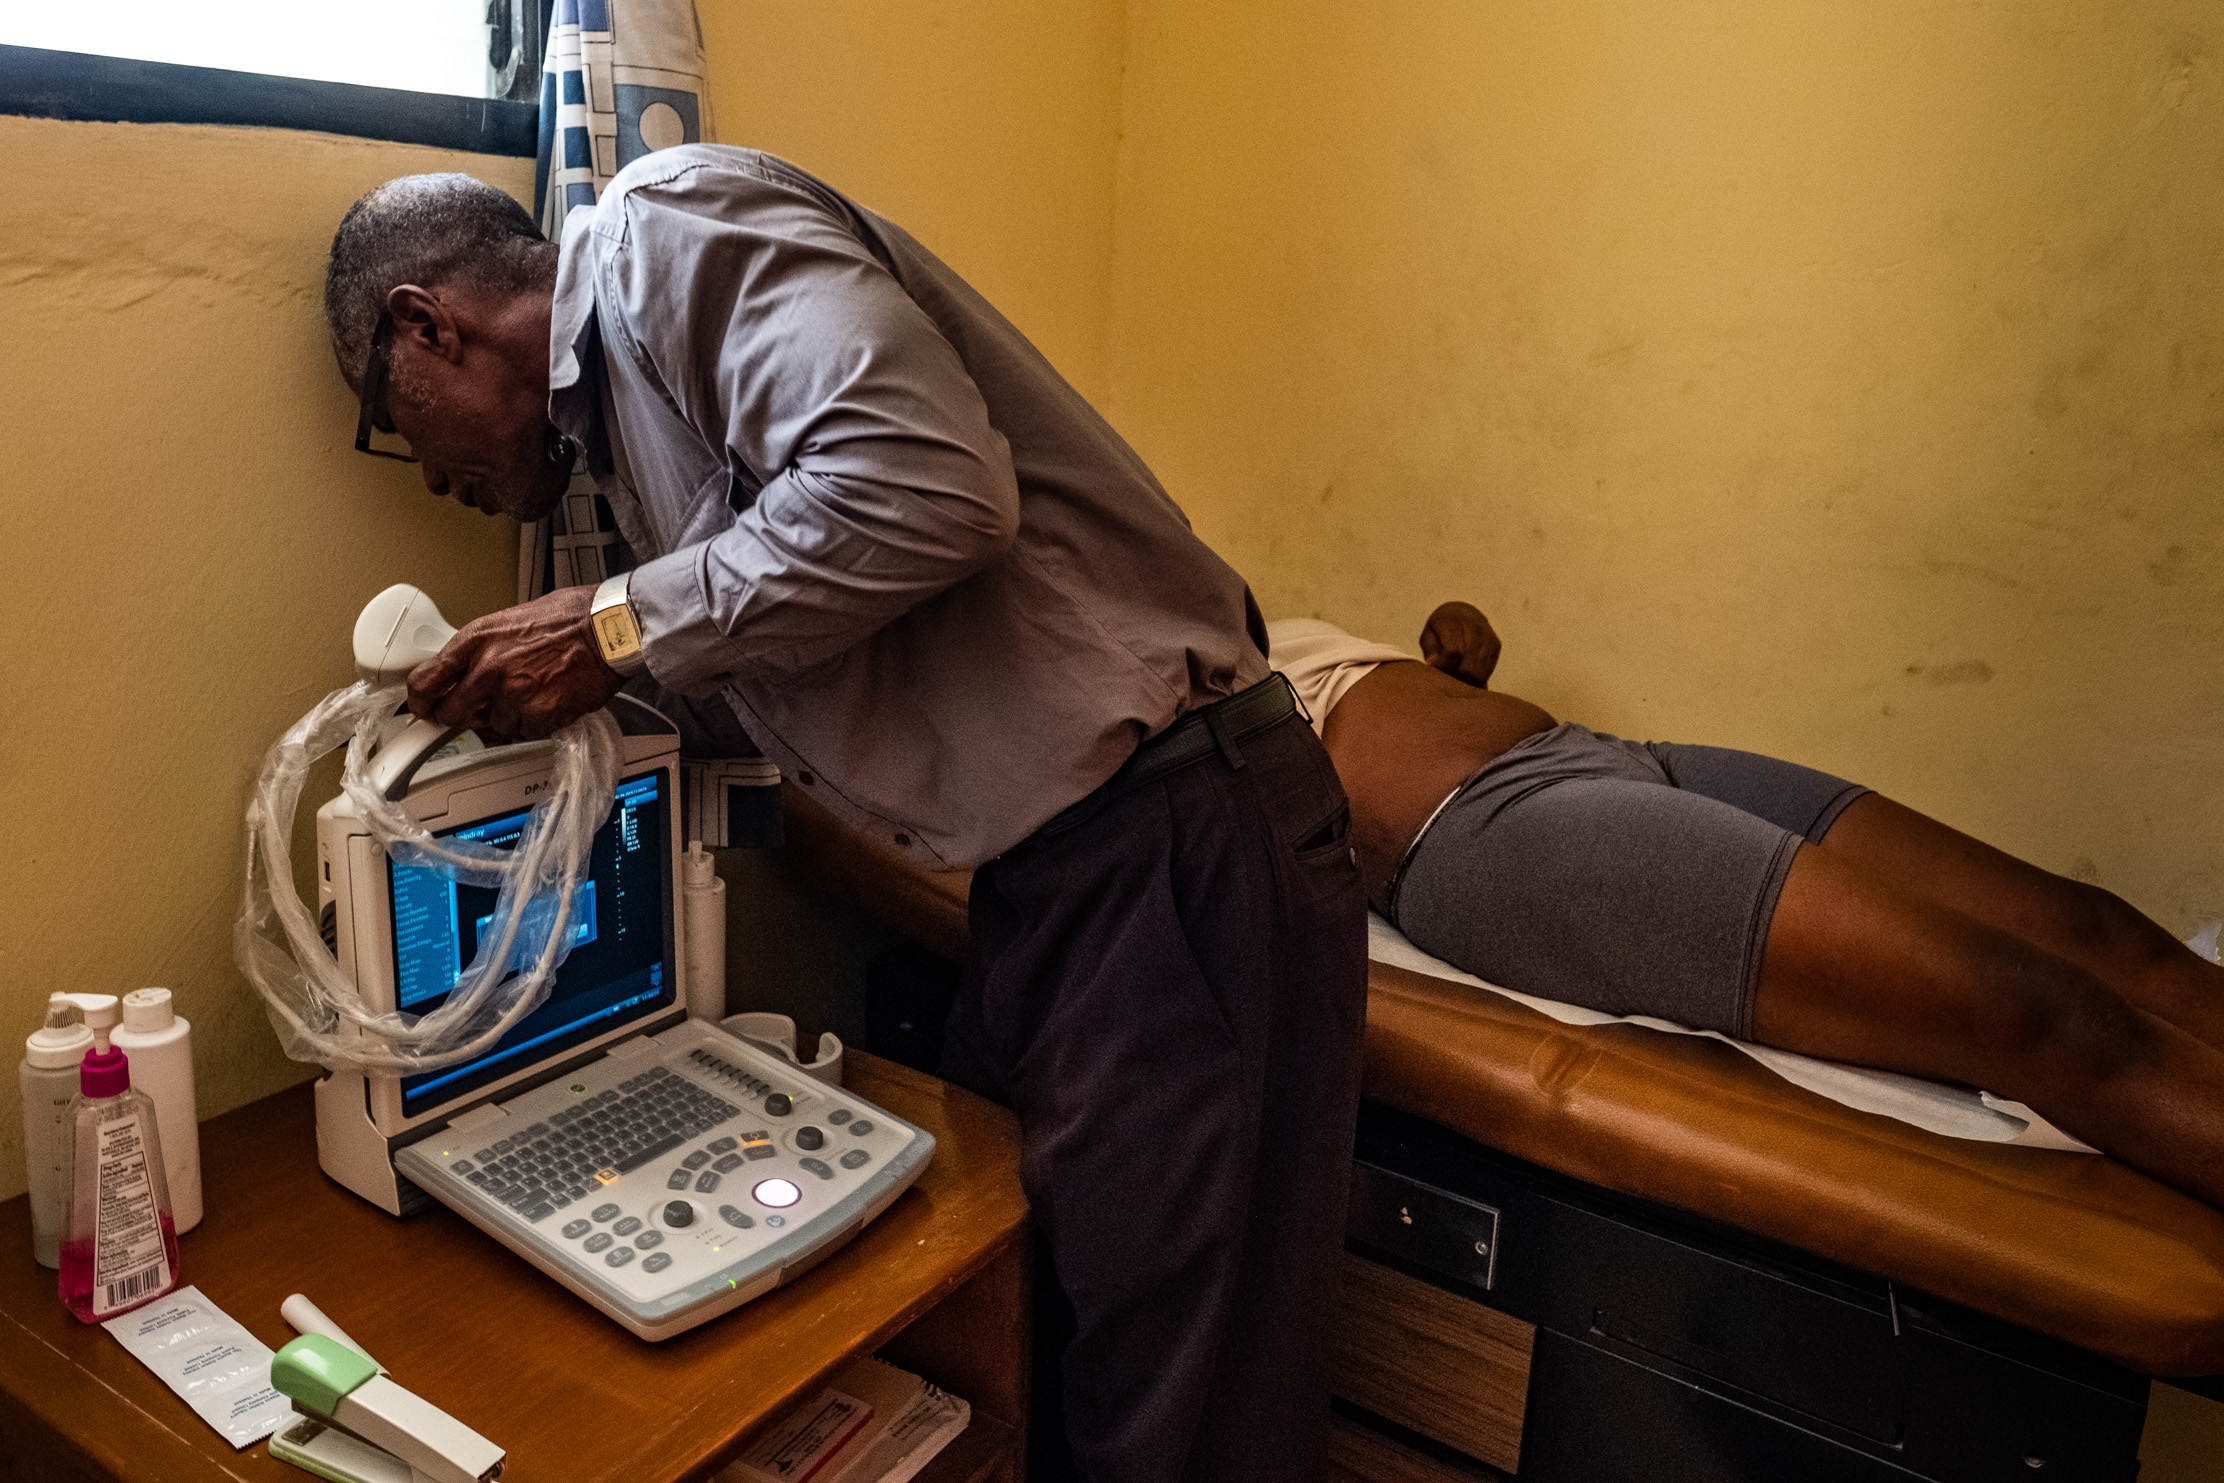 Dr. Arold Scutt, Medical Director of Centre Médico-Social Petite Place Cazeau since 1991, sets up his new ultrasound machine for the first time. He expects to retire in the next year or two and is proud he was able to add this life-saving technology to his legacy.